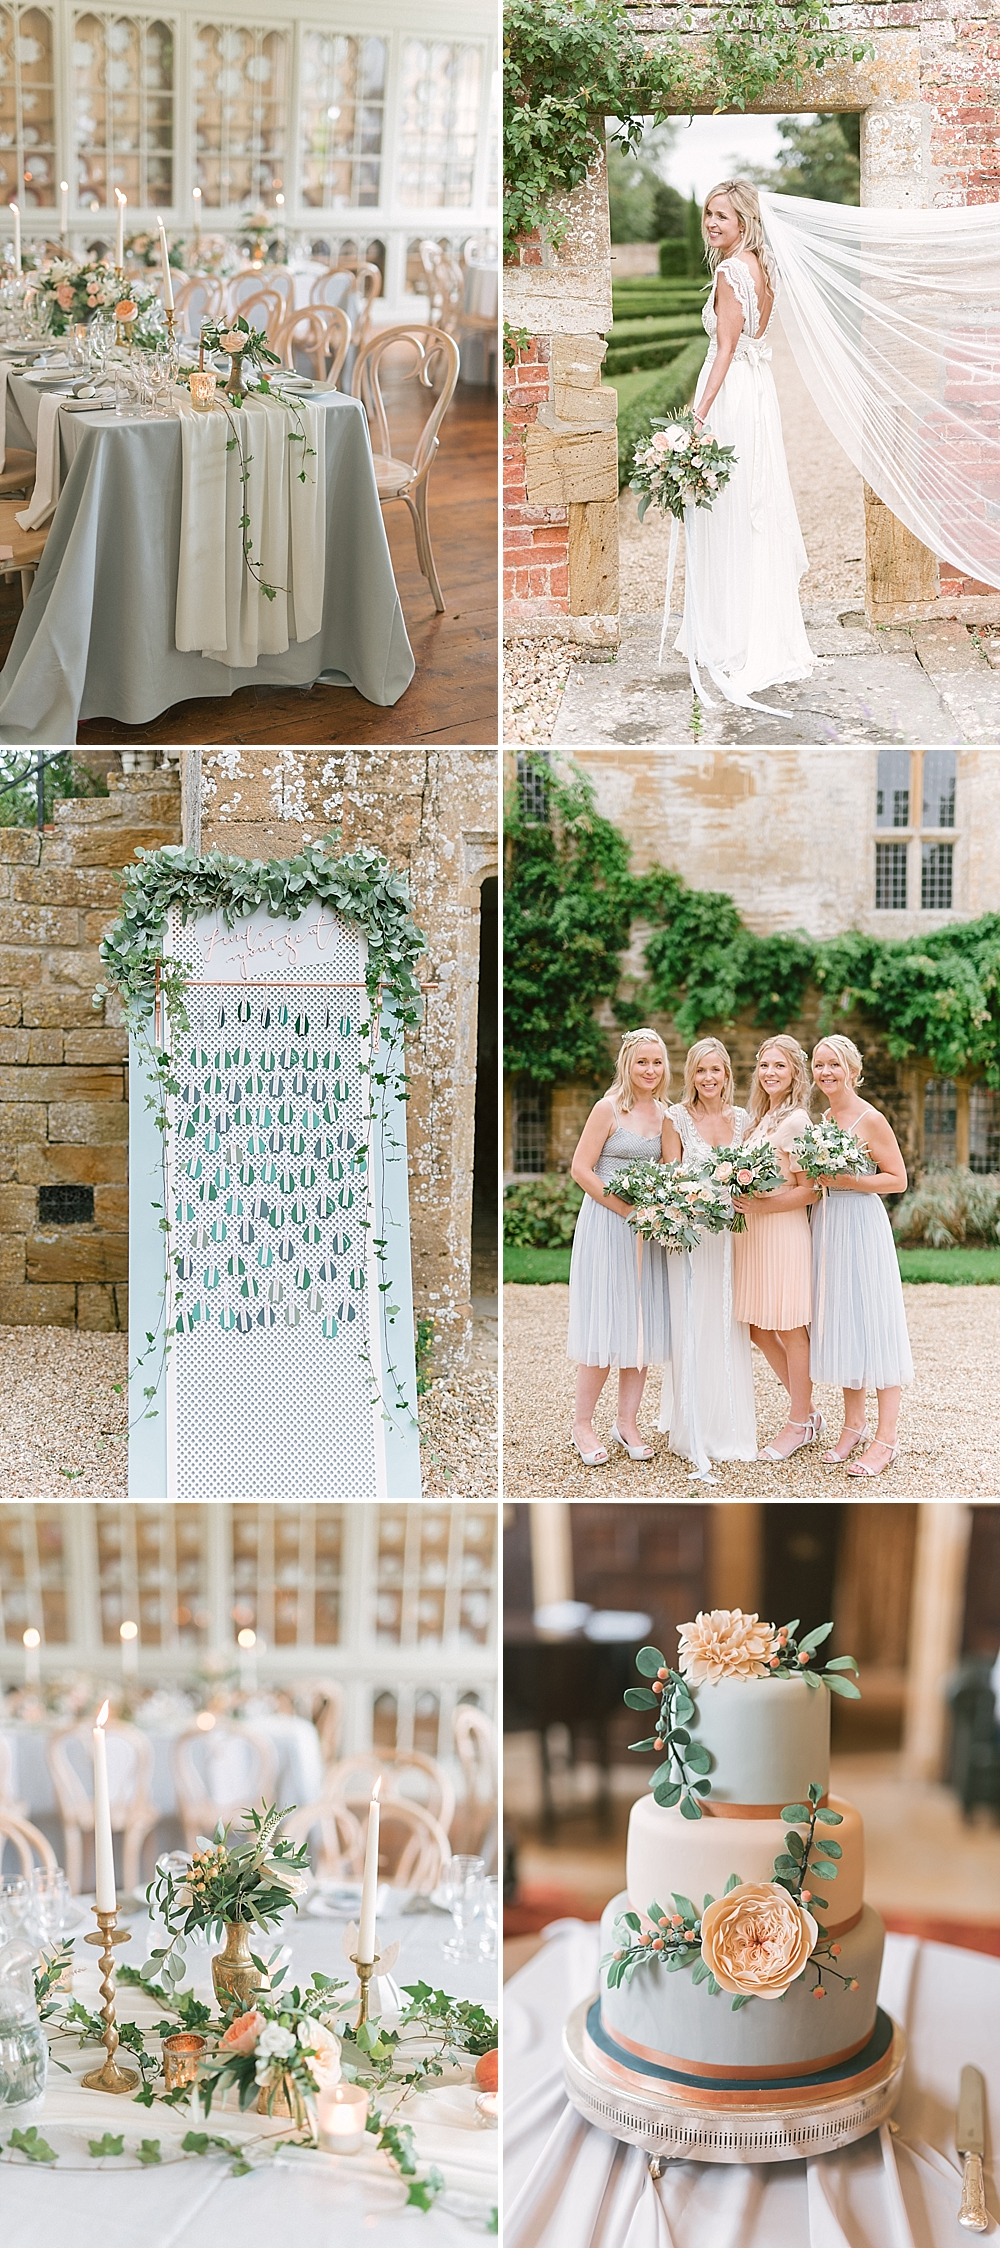 Peach Wedding at Brympton House by Emma Pilkington Photography